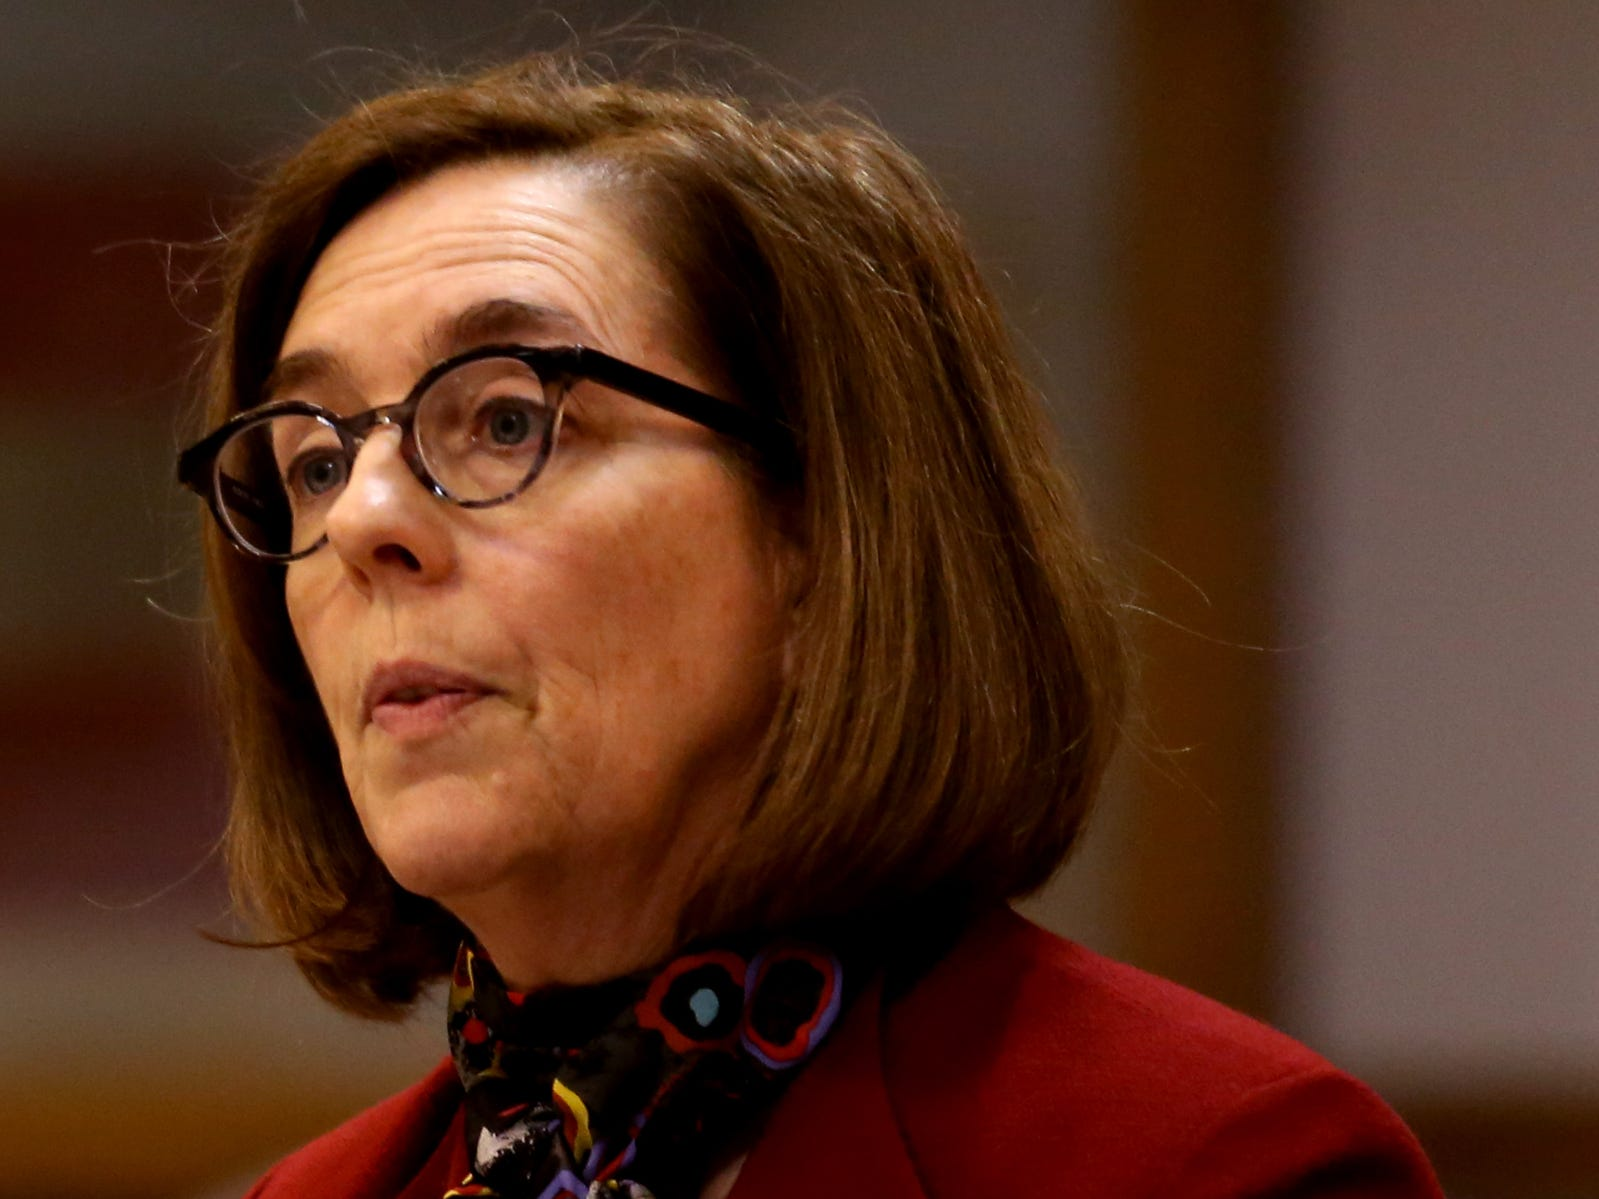 Gov. Kate Brown speaks during the AP Legislative Preview Day at the Oregon State Capitol in Salem on Friday, Jan. 18, 2019. The 2019 Oregon legislative session begins January 22.